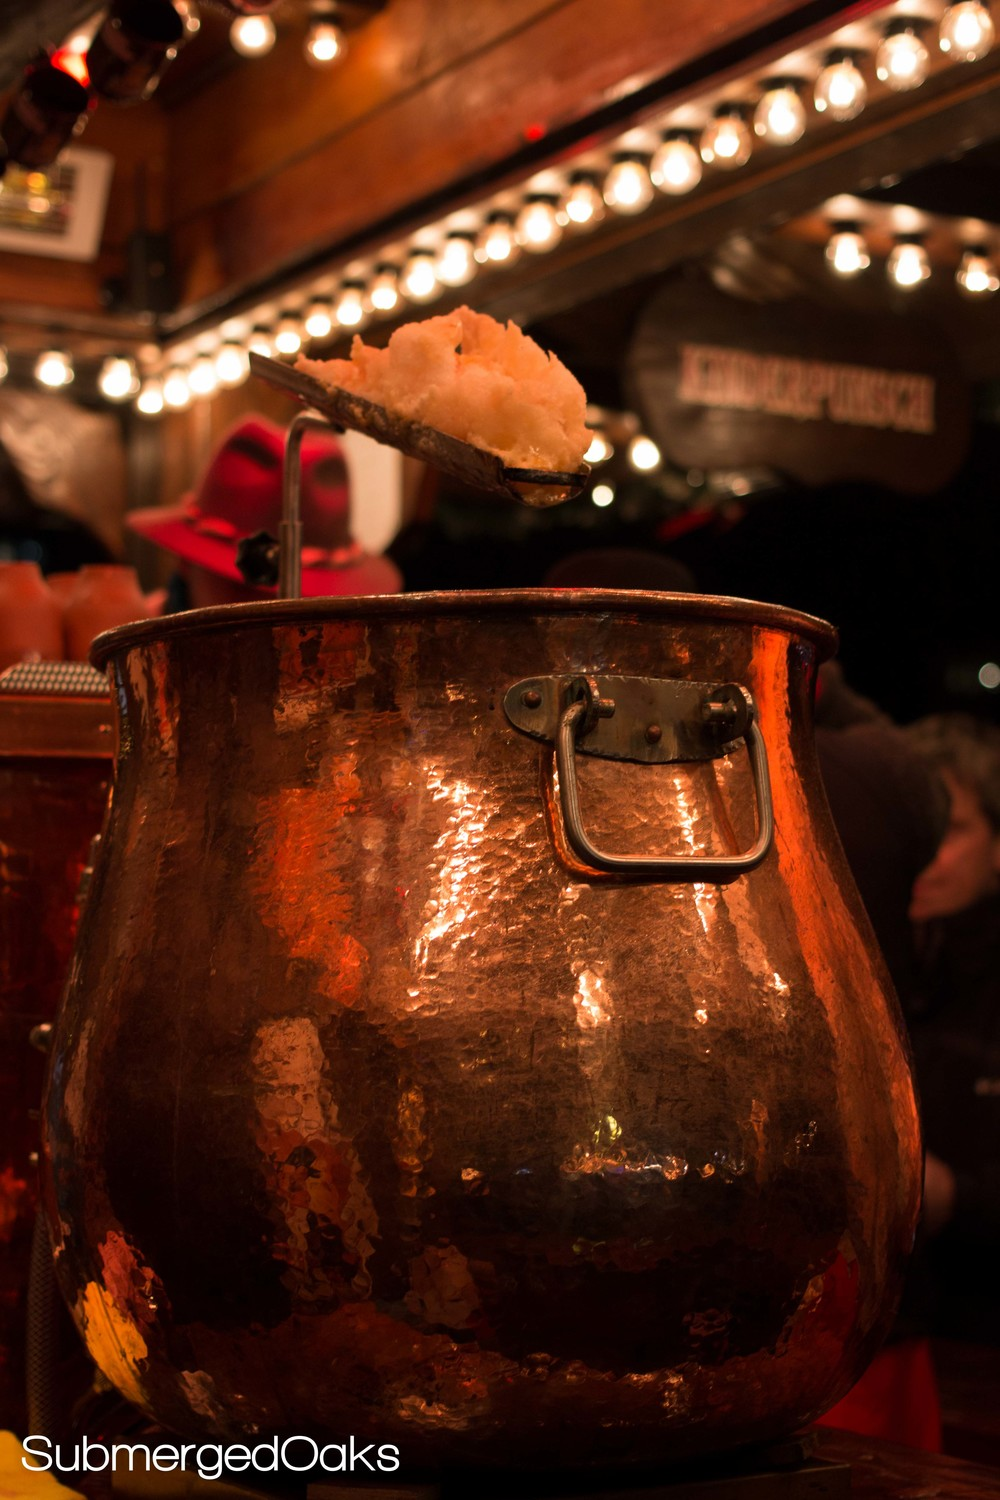 Copper kettle with Feuerzangenbowle